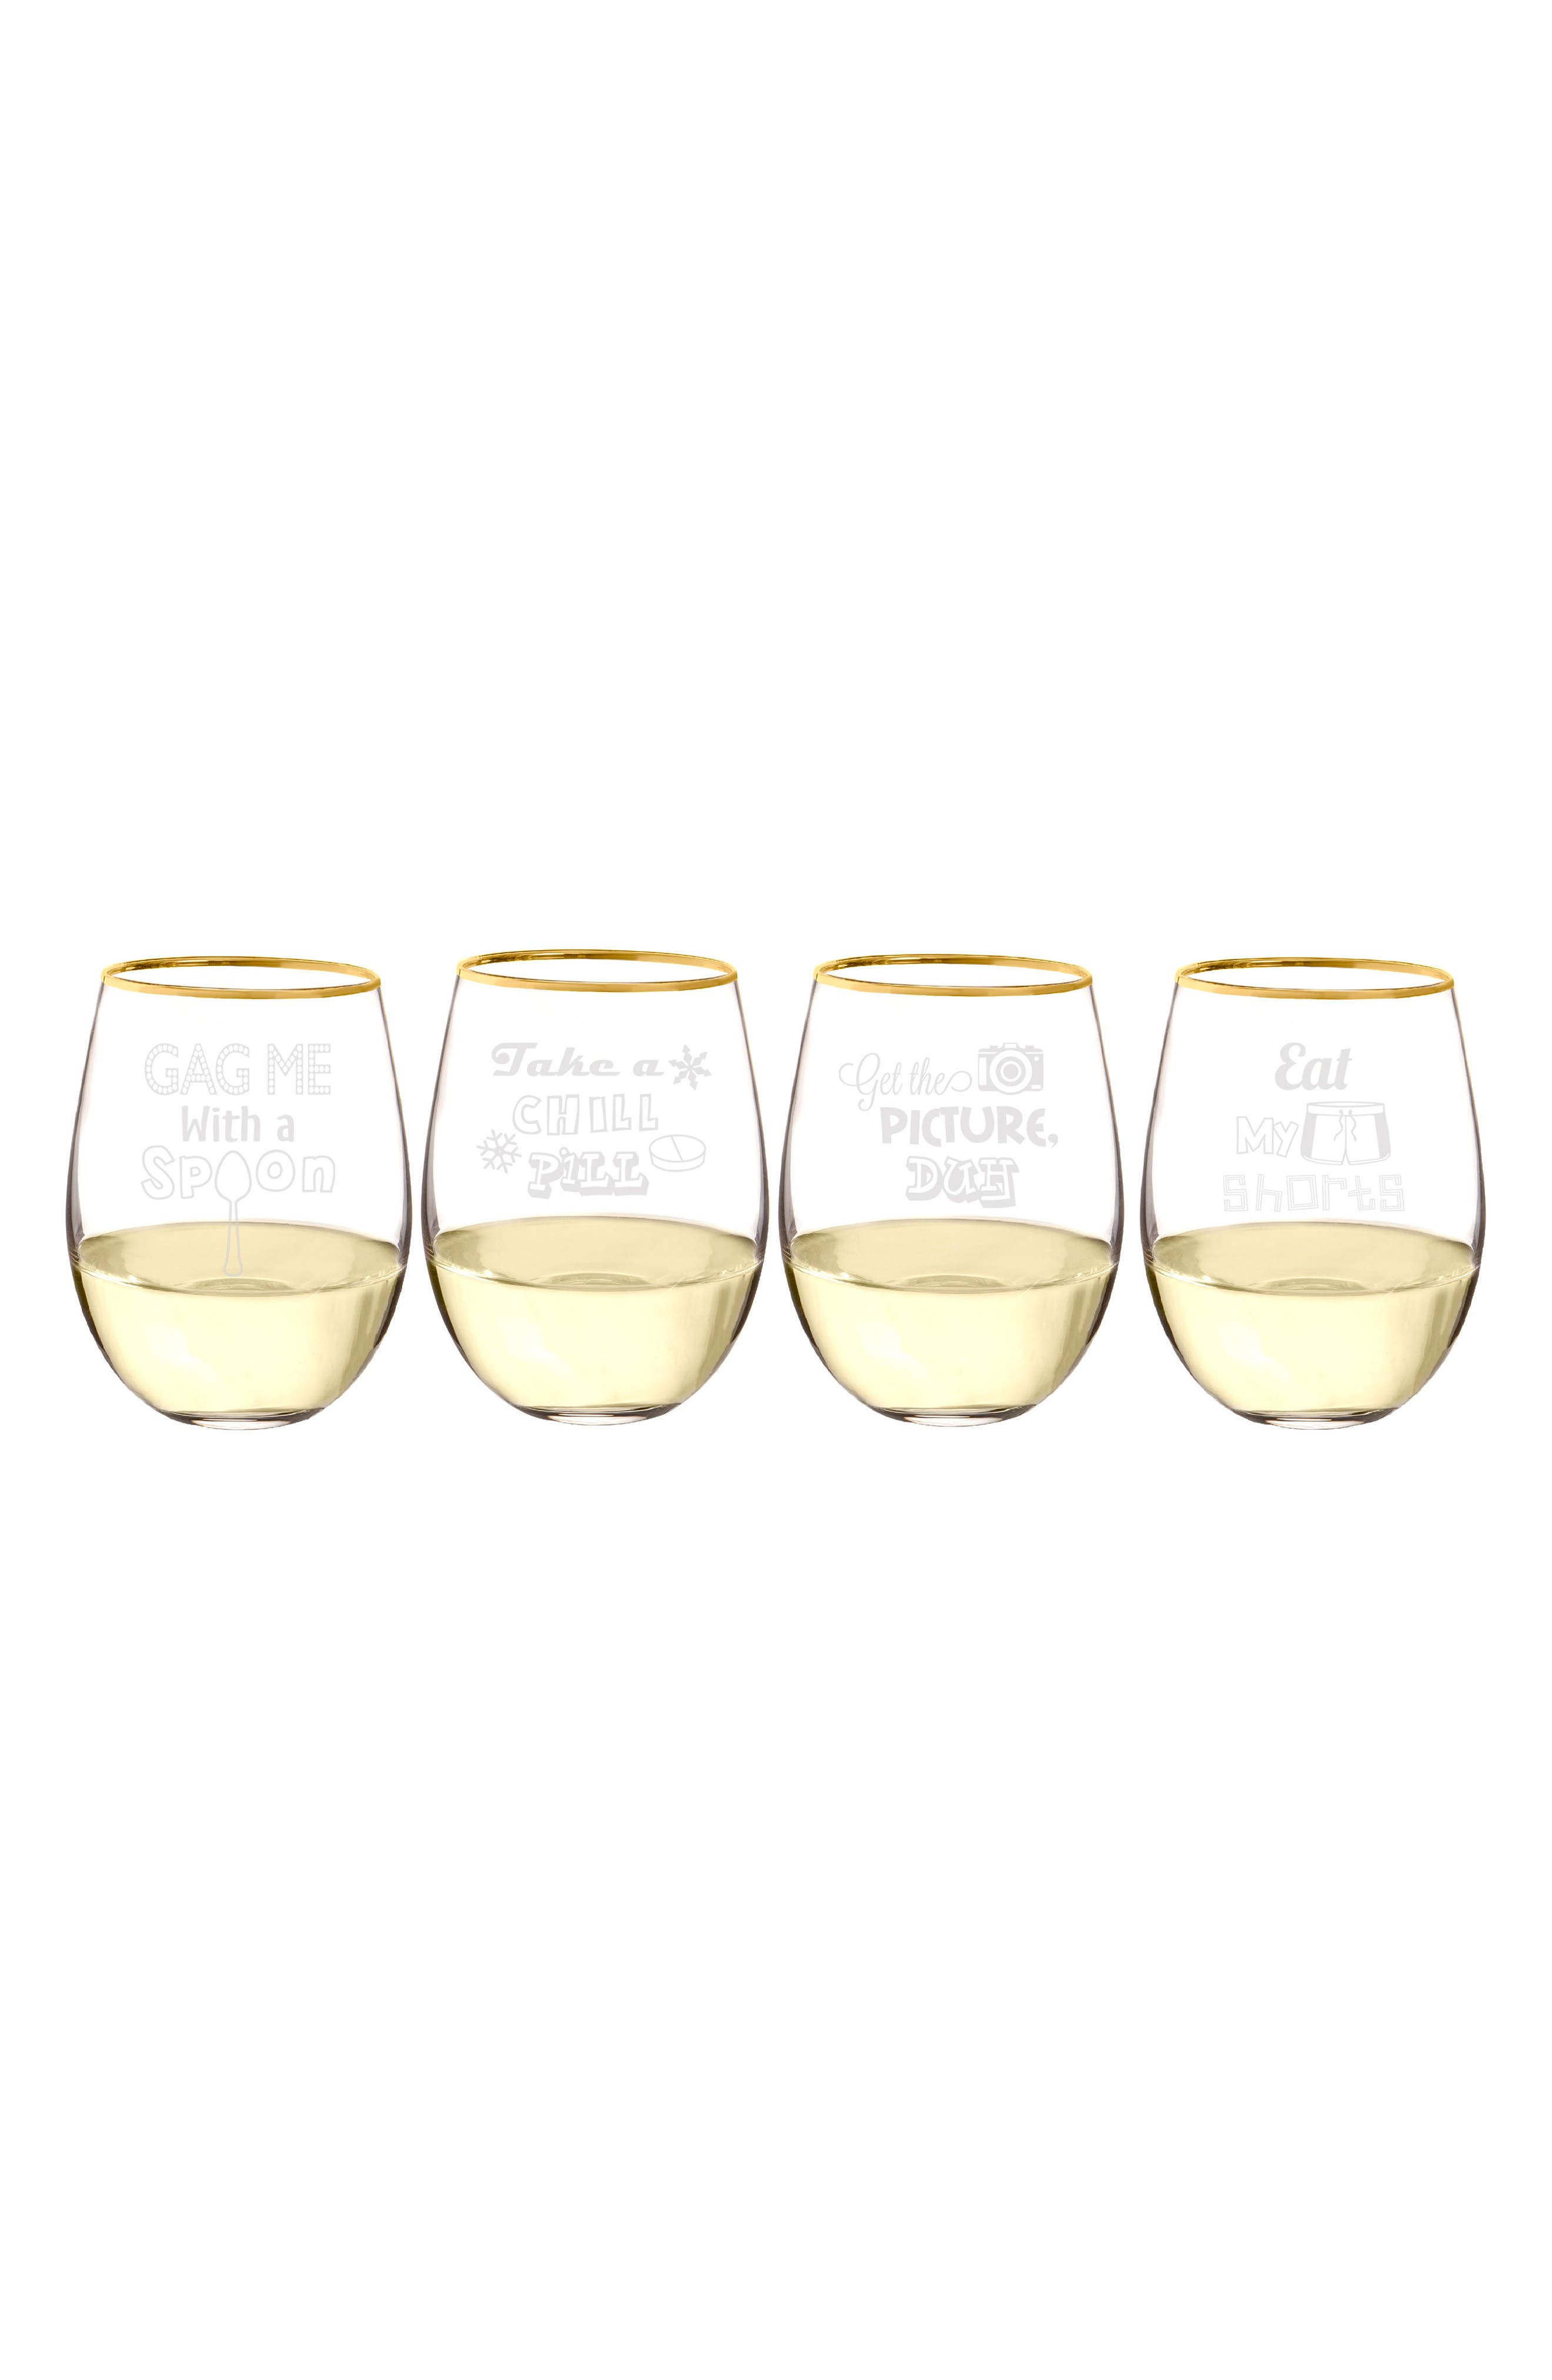 90's Sayings Set of 4 Etched Stemless Wine Glasses,                             Alternate thumbnail 4, color,                             100